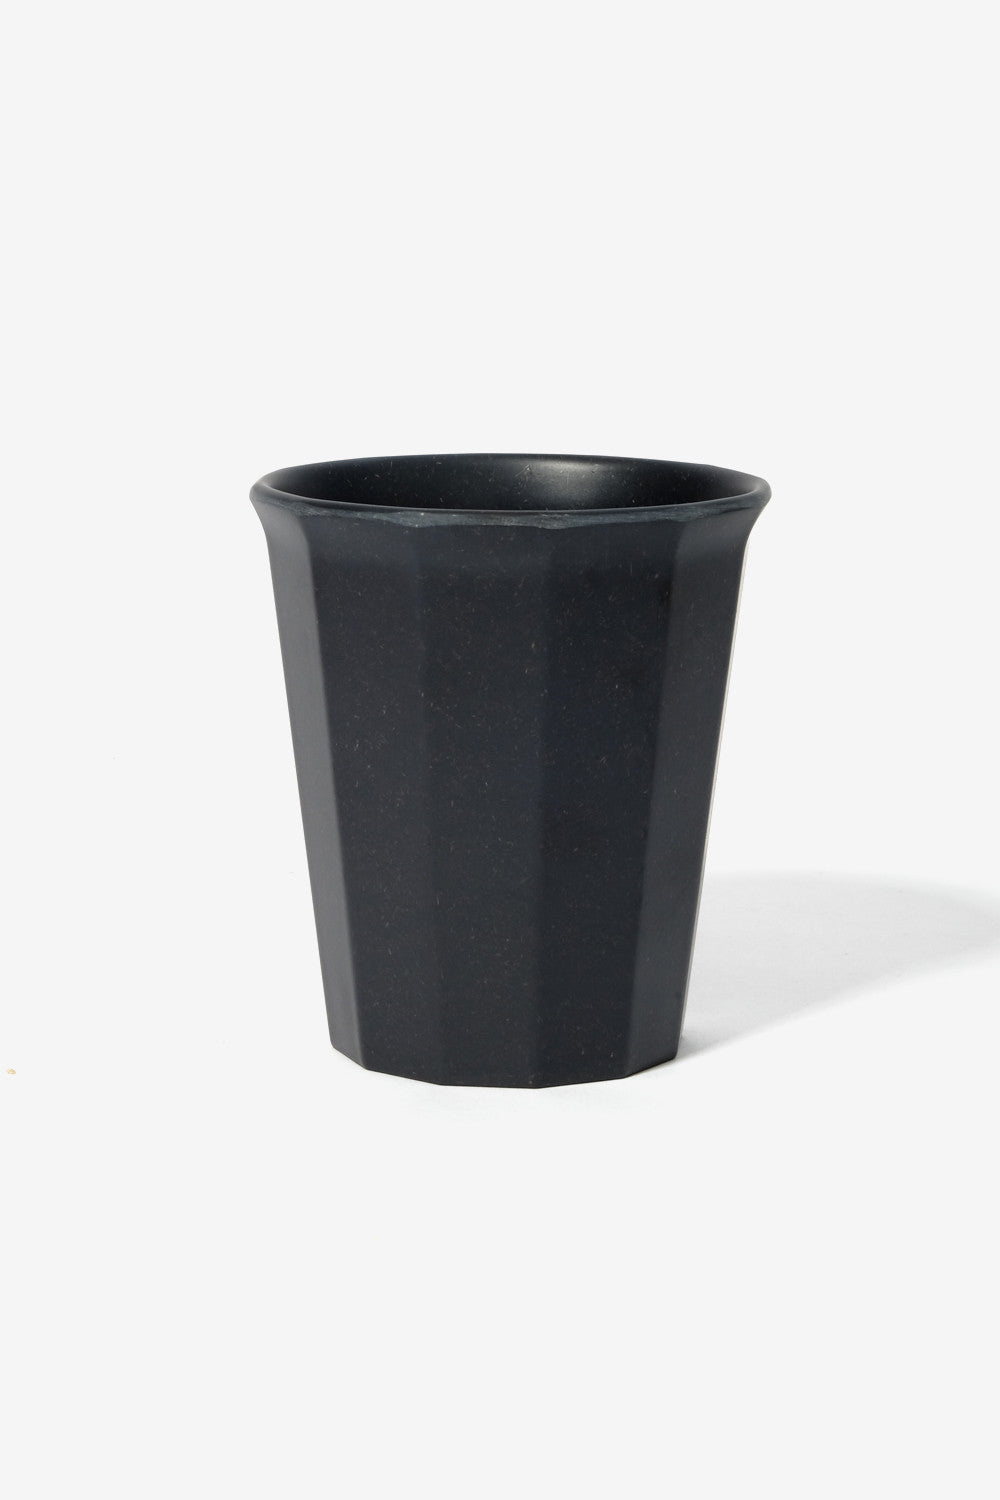 ALFRESCO Tumbler Black, Tableware, Kinto - Six and Sons